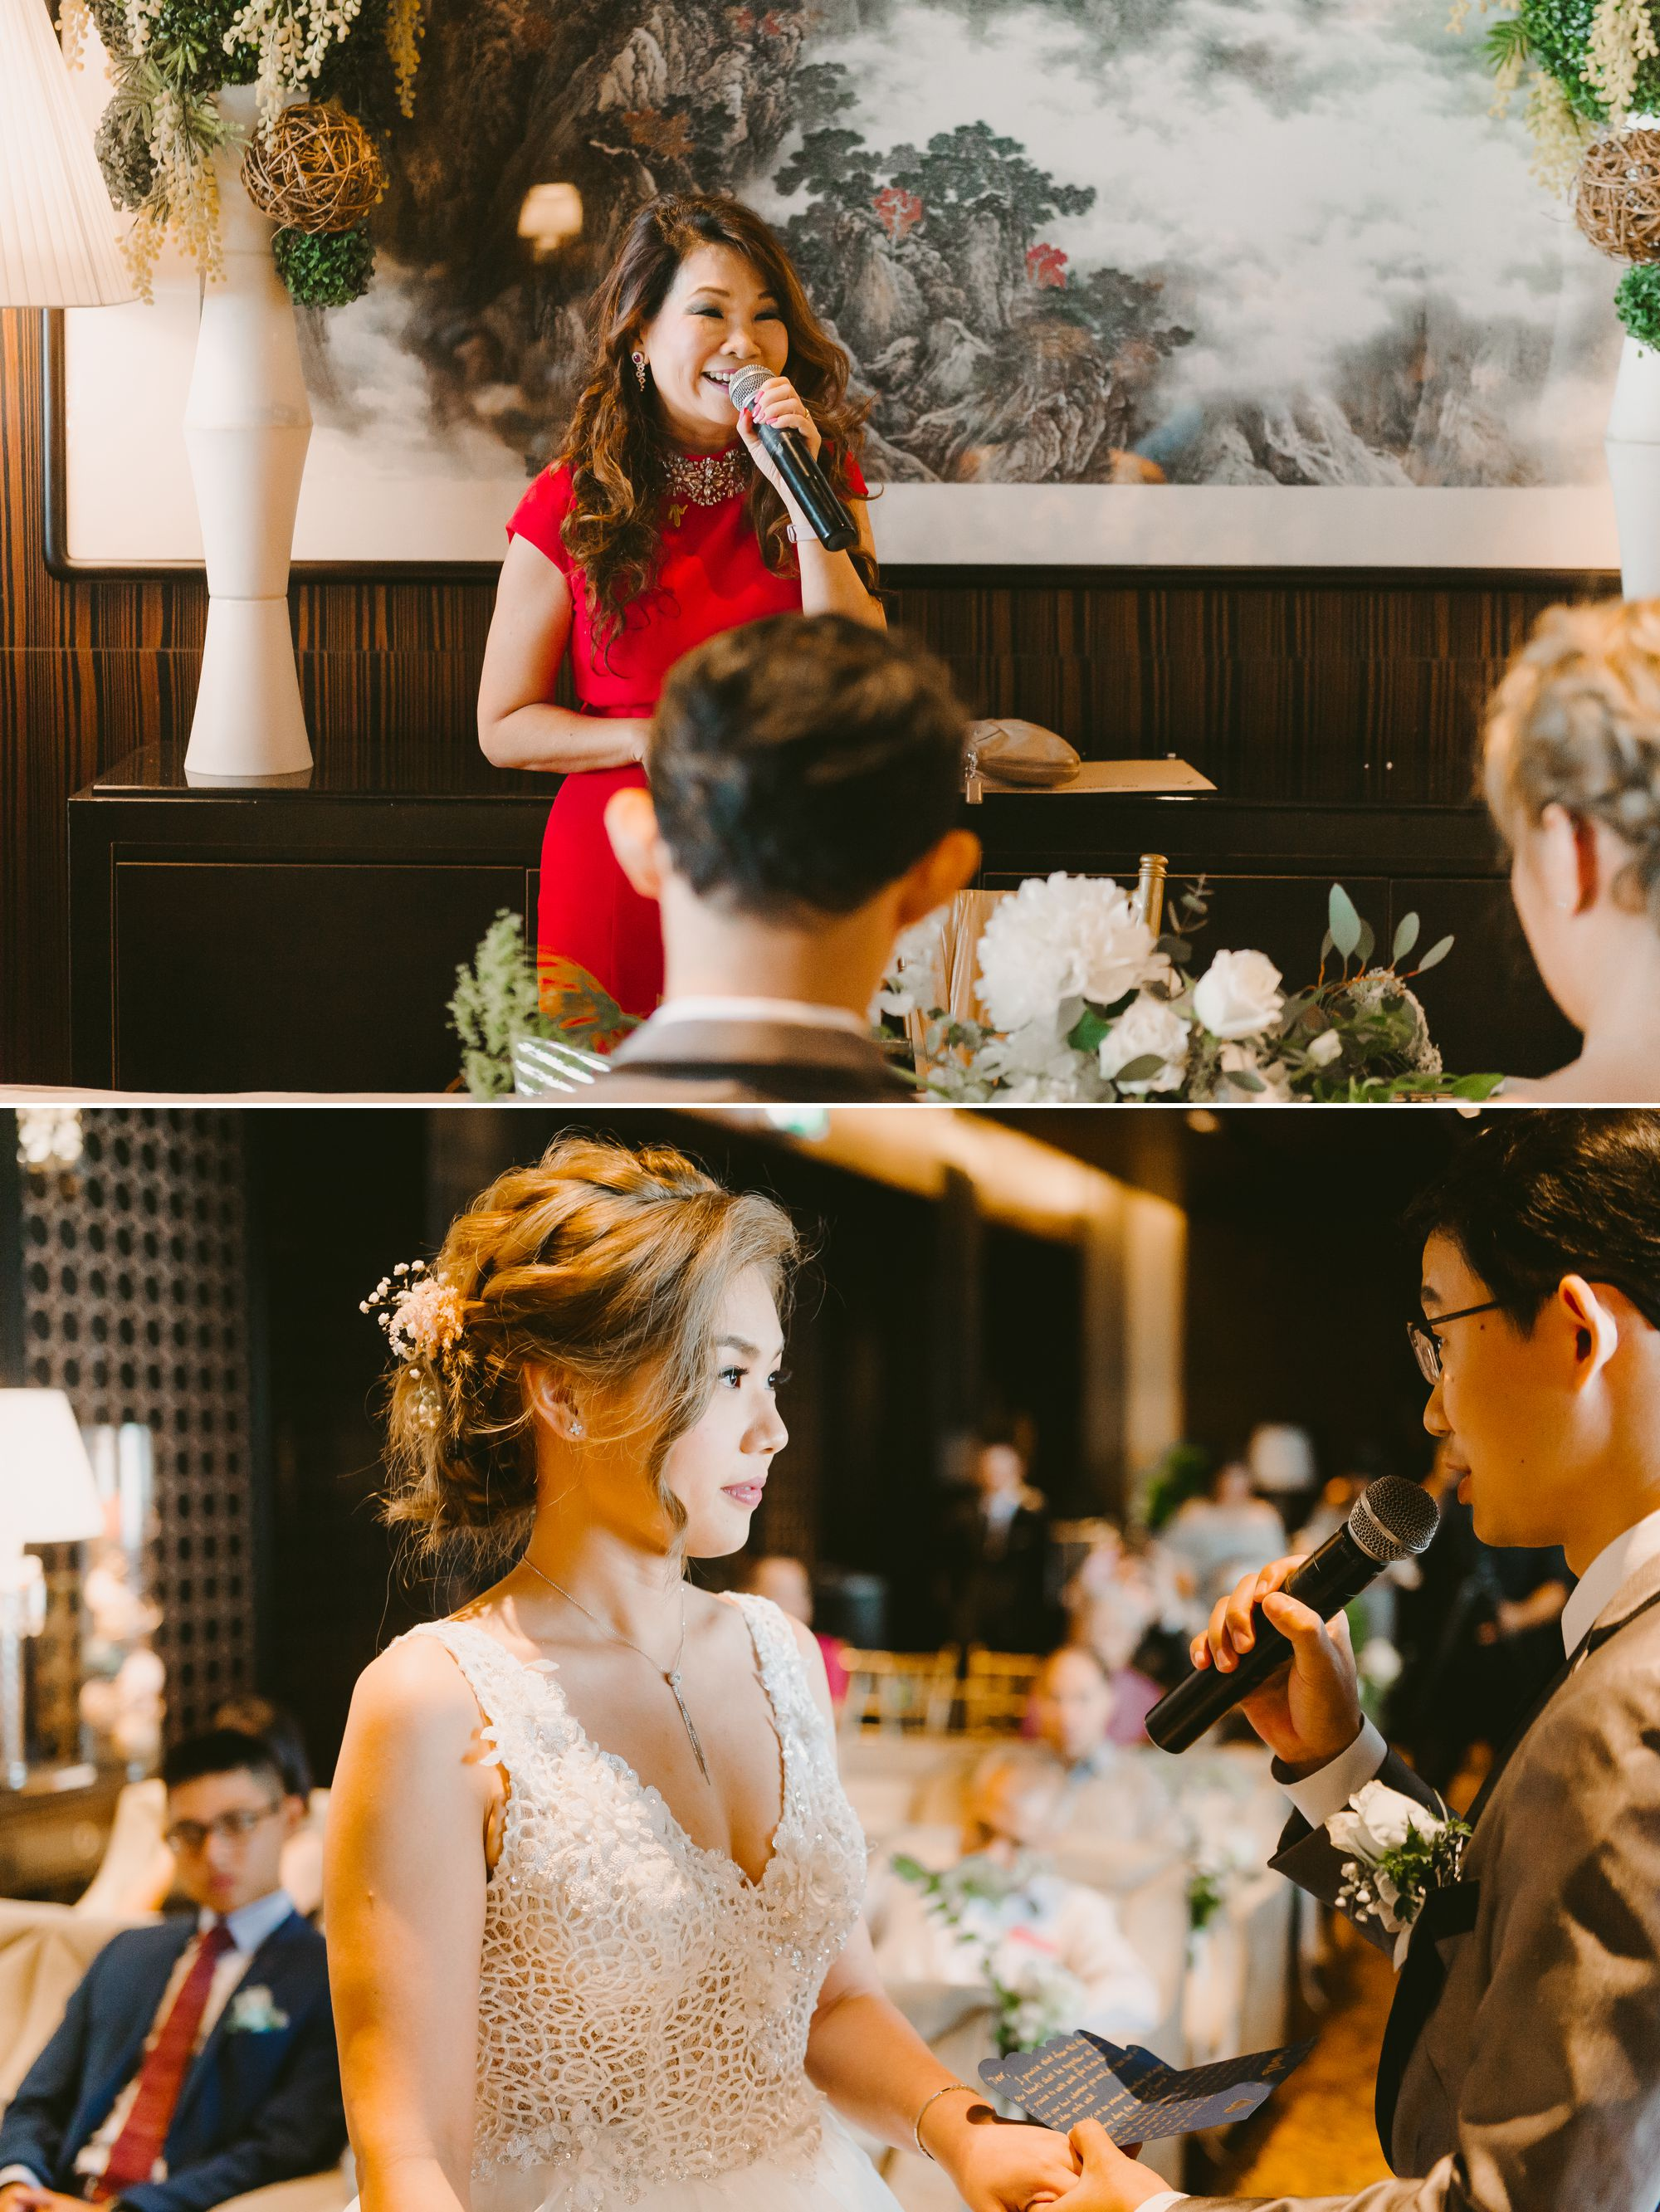 wedding_photographer_singapore 21.jpg